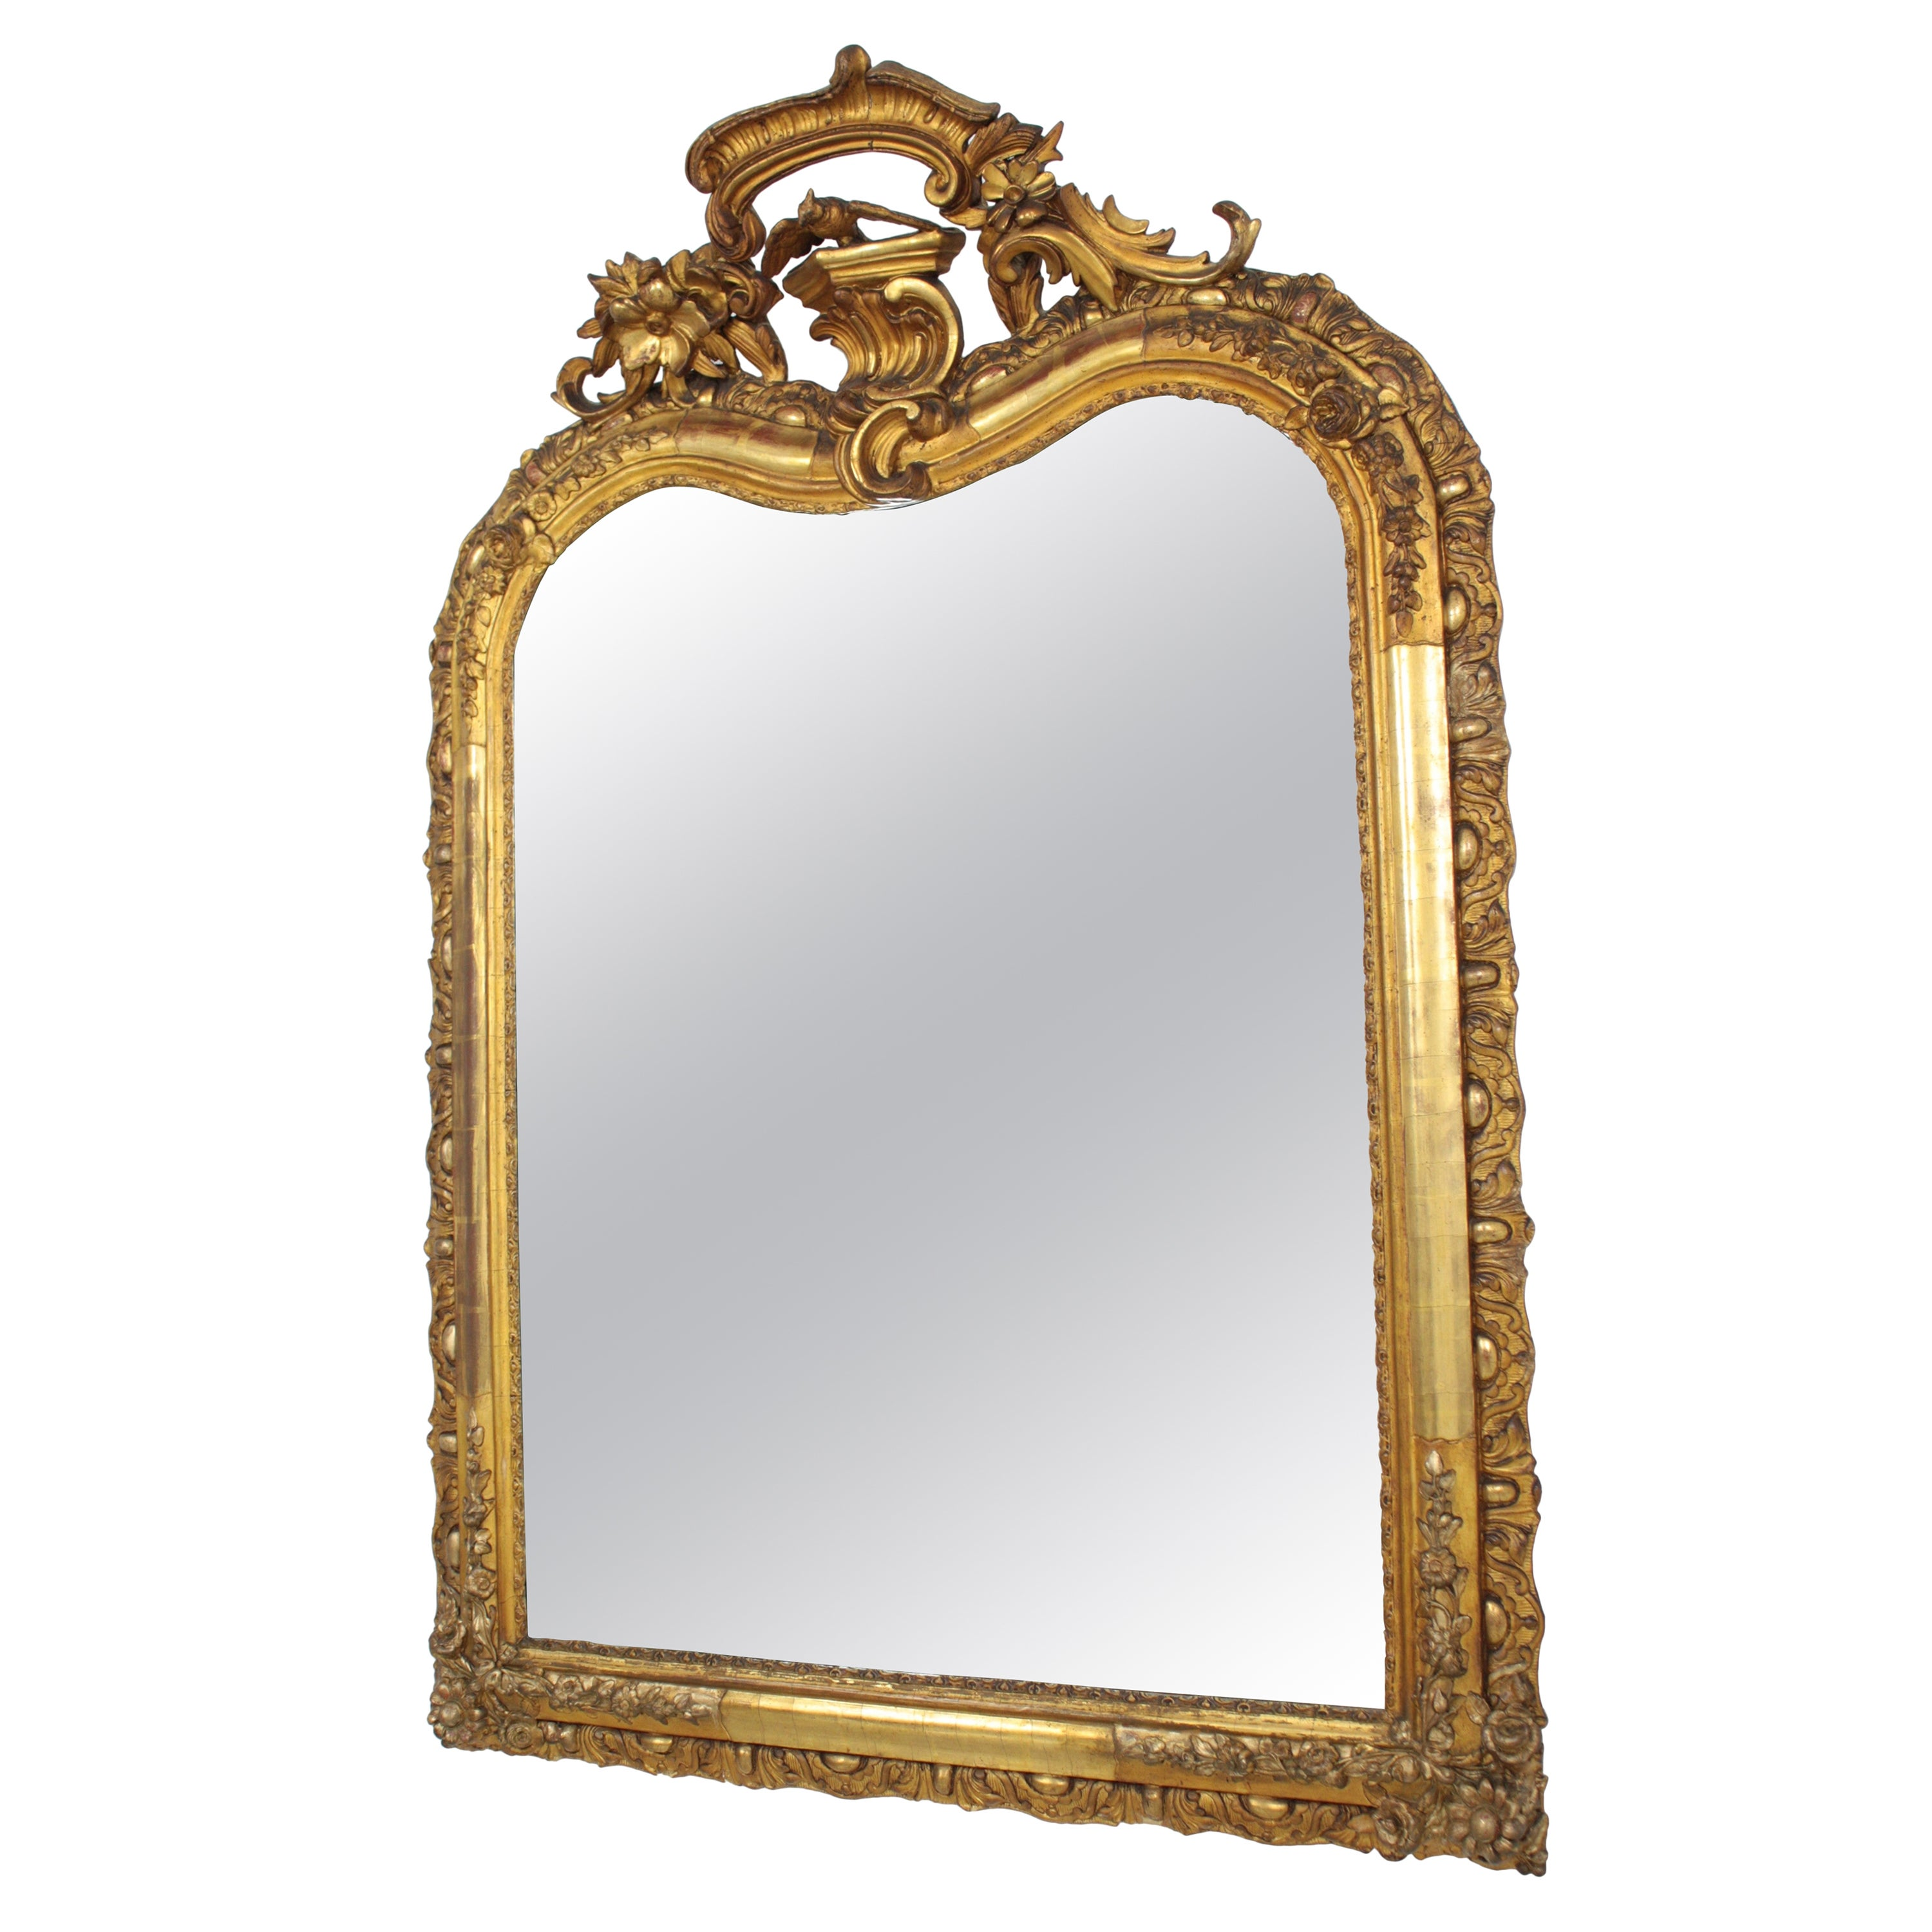 French Louis XV Carved Giltwood Mirror with Crest